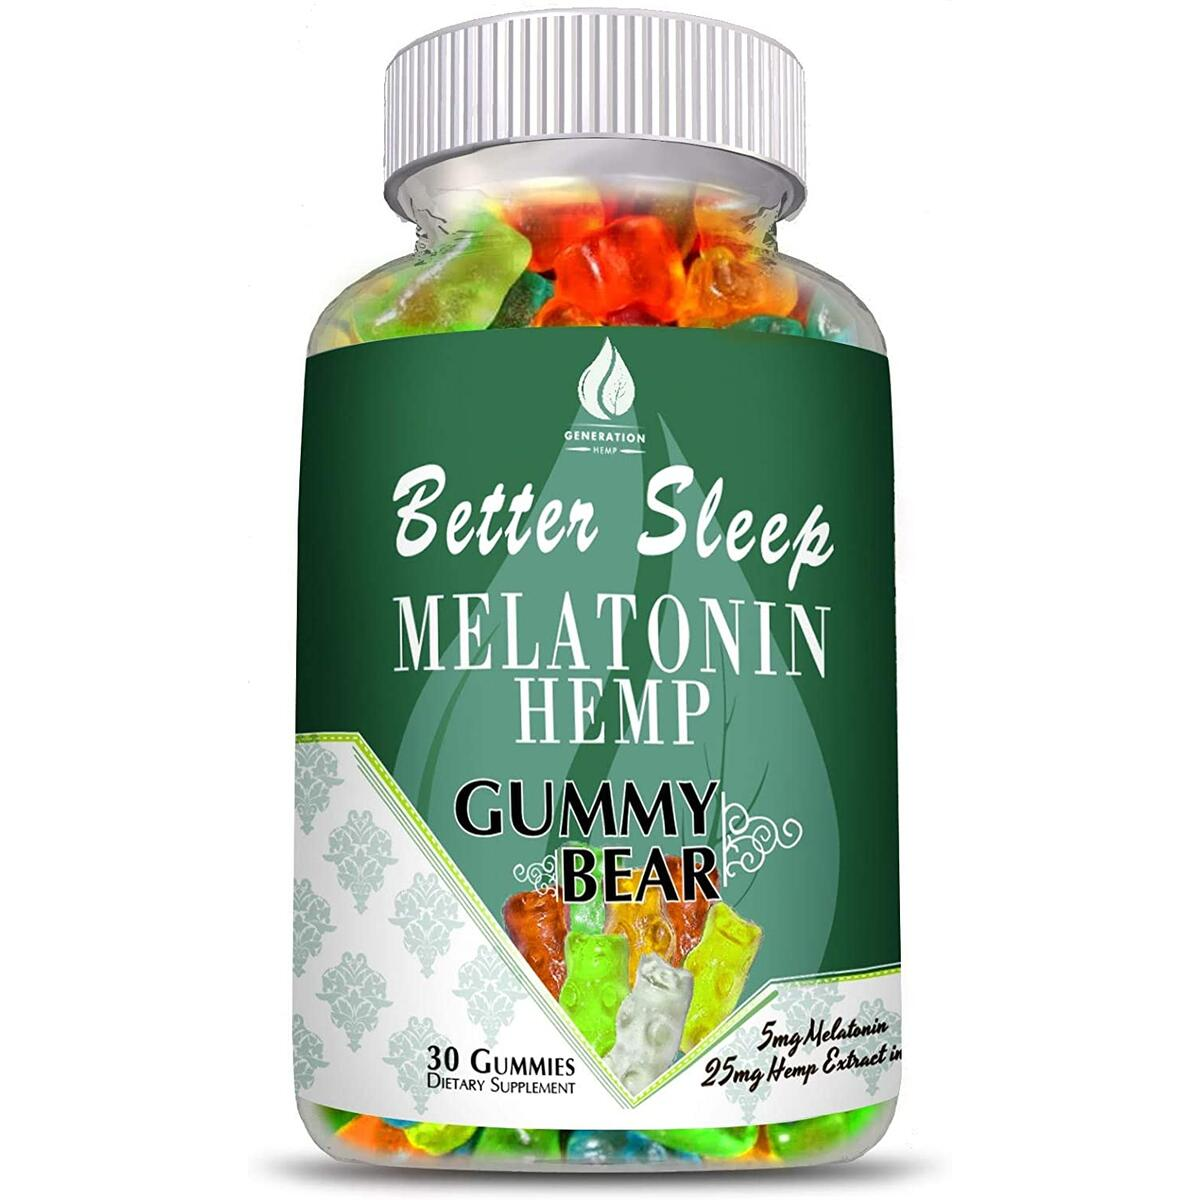 Melatonin Hemp Gummies for Sleep, Anxiety and Stress Relief. 5mg Melatonin + 750mg of 100% Pure Organic Hemp Extract in Every Gummy. #1 Natural Sleep Aid to Promote restful Sleep -30 Servings